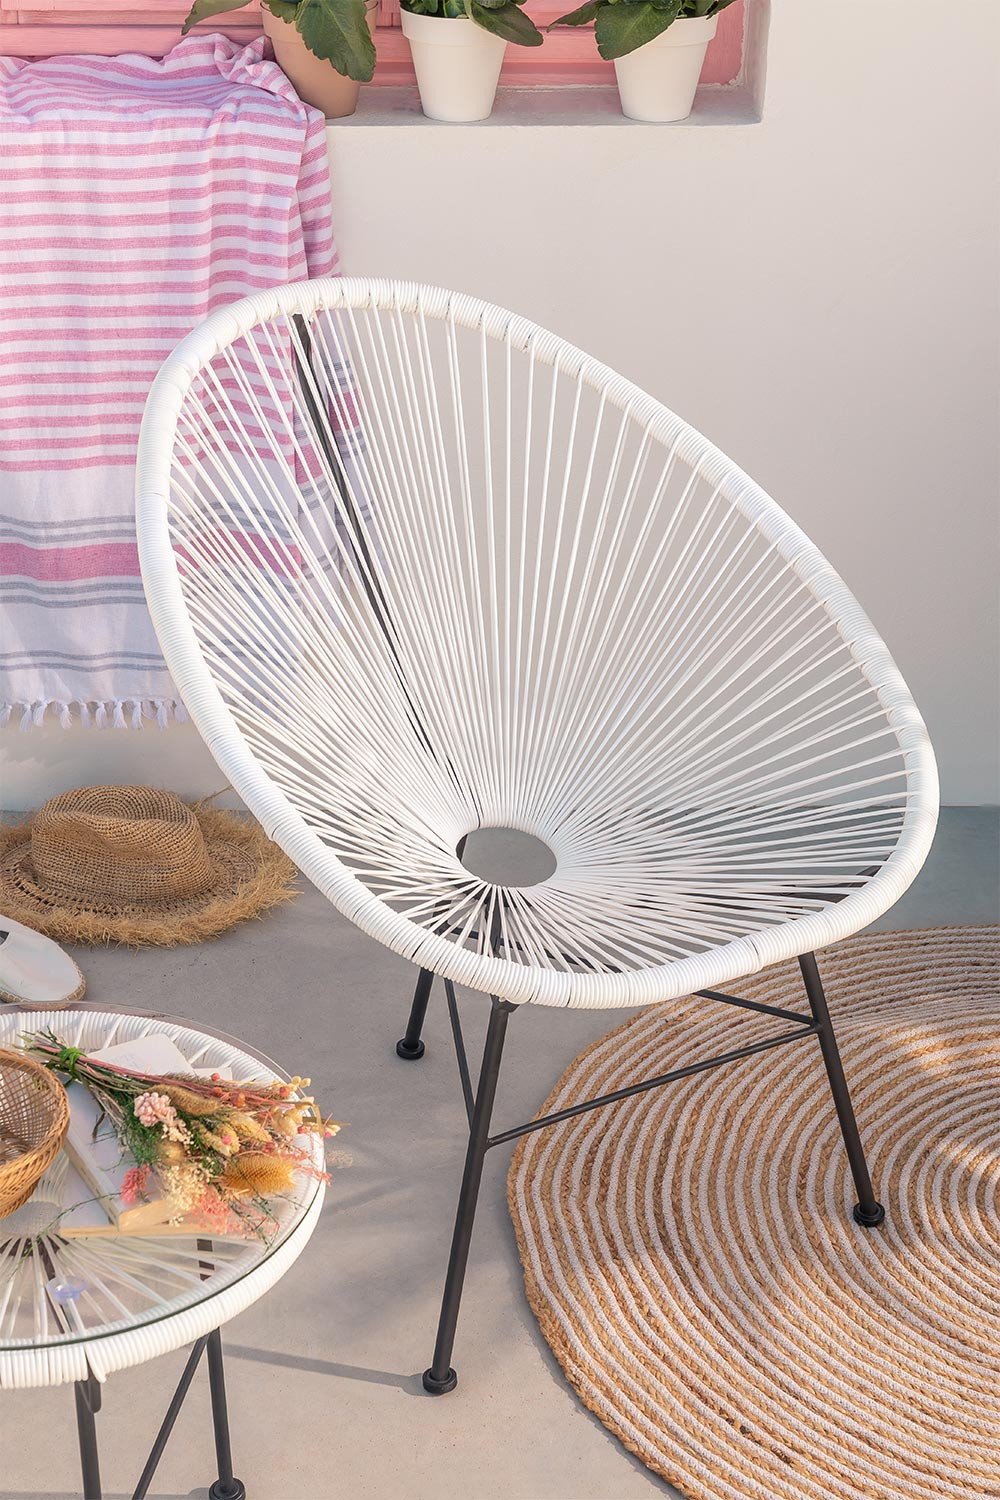 Pack 2 New Acapulco Chairs, gallery image 1